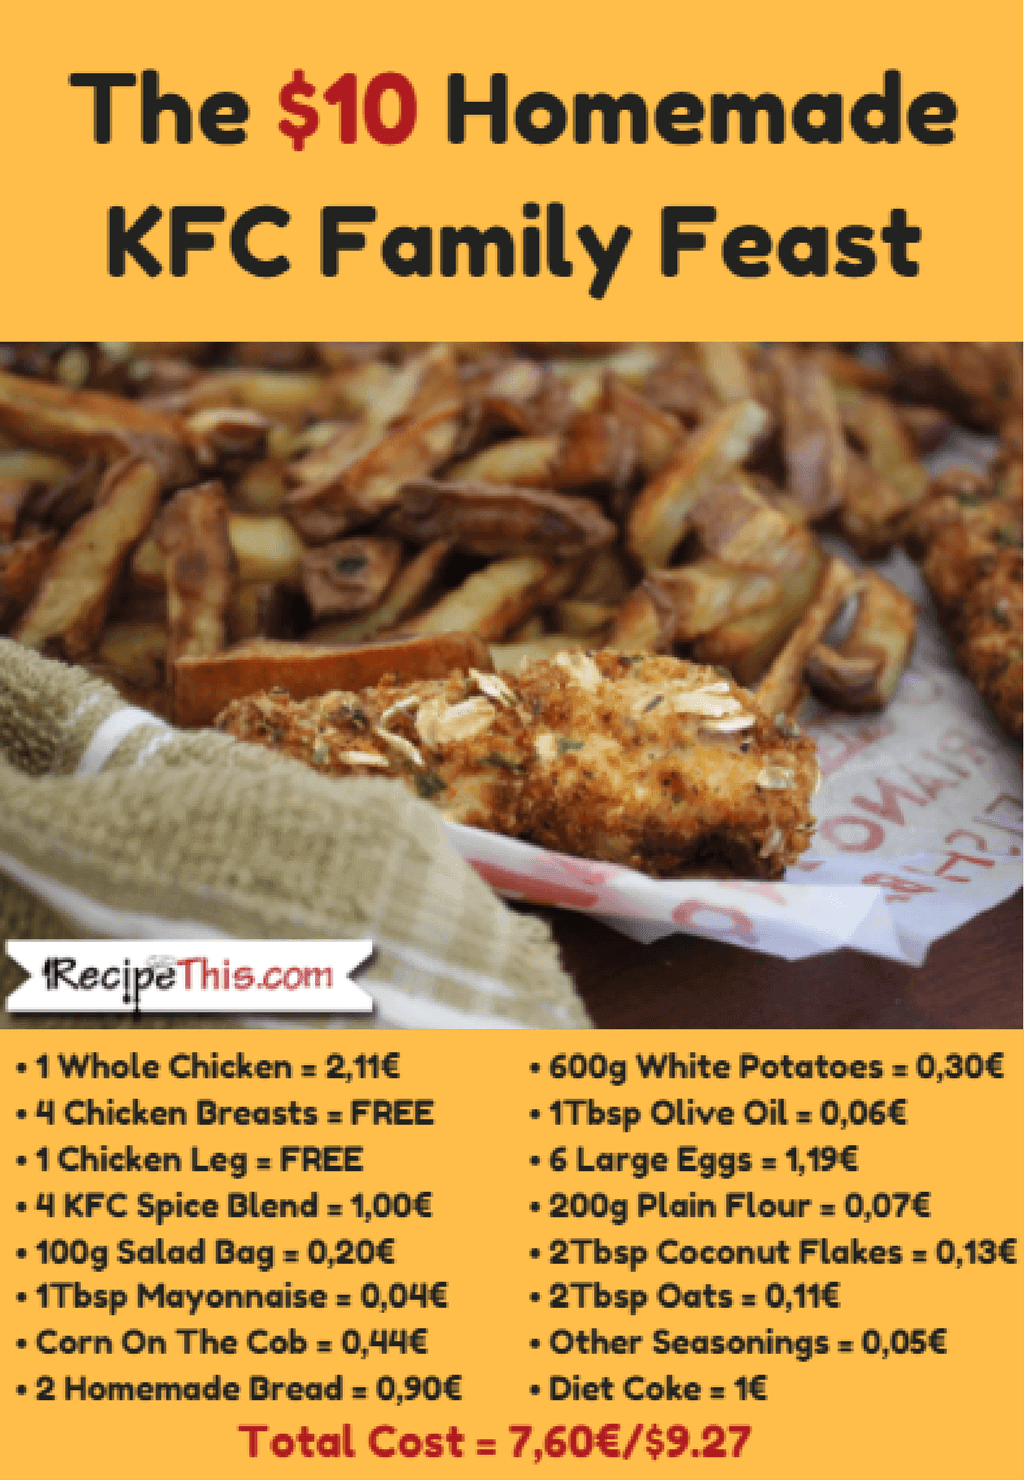 Cheap Family Meals The 10 dollar homemade KFC Feast